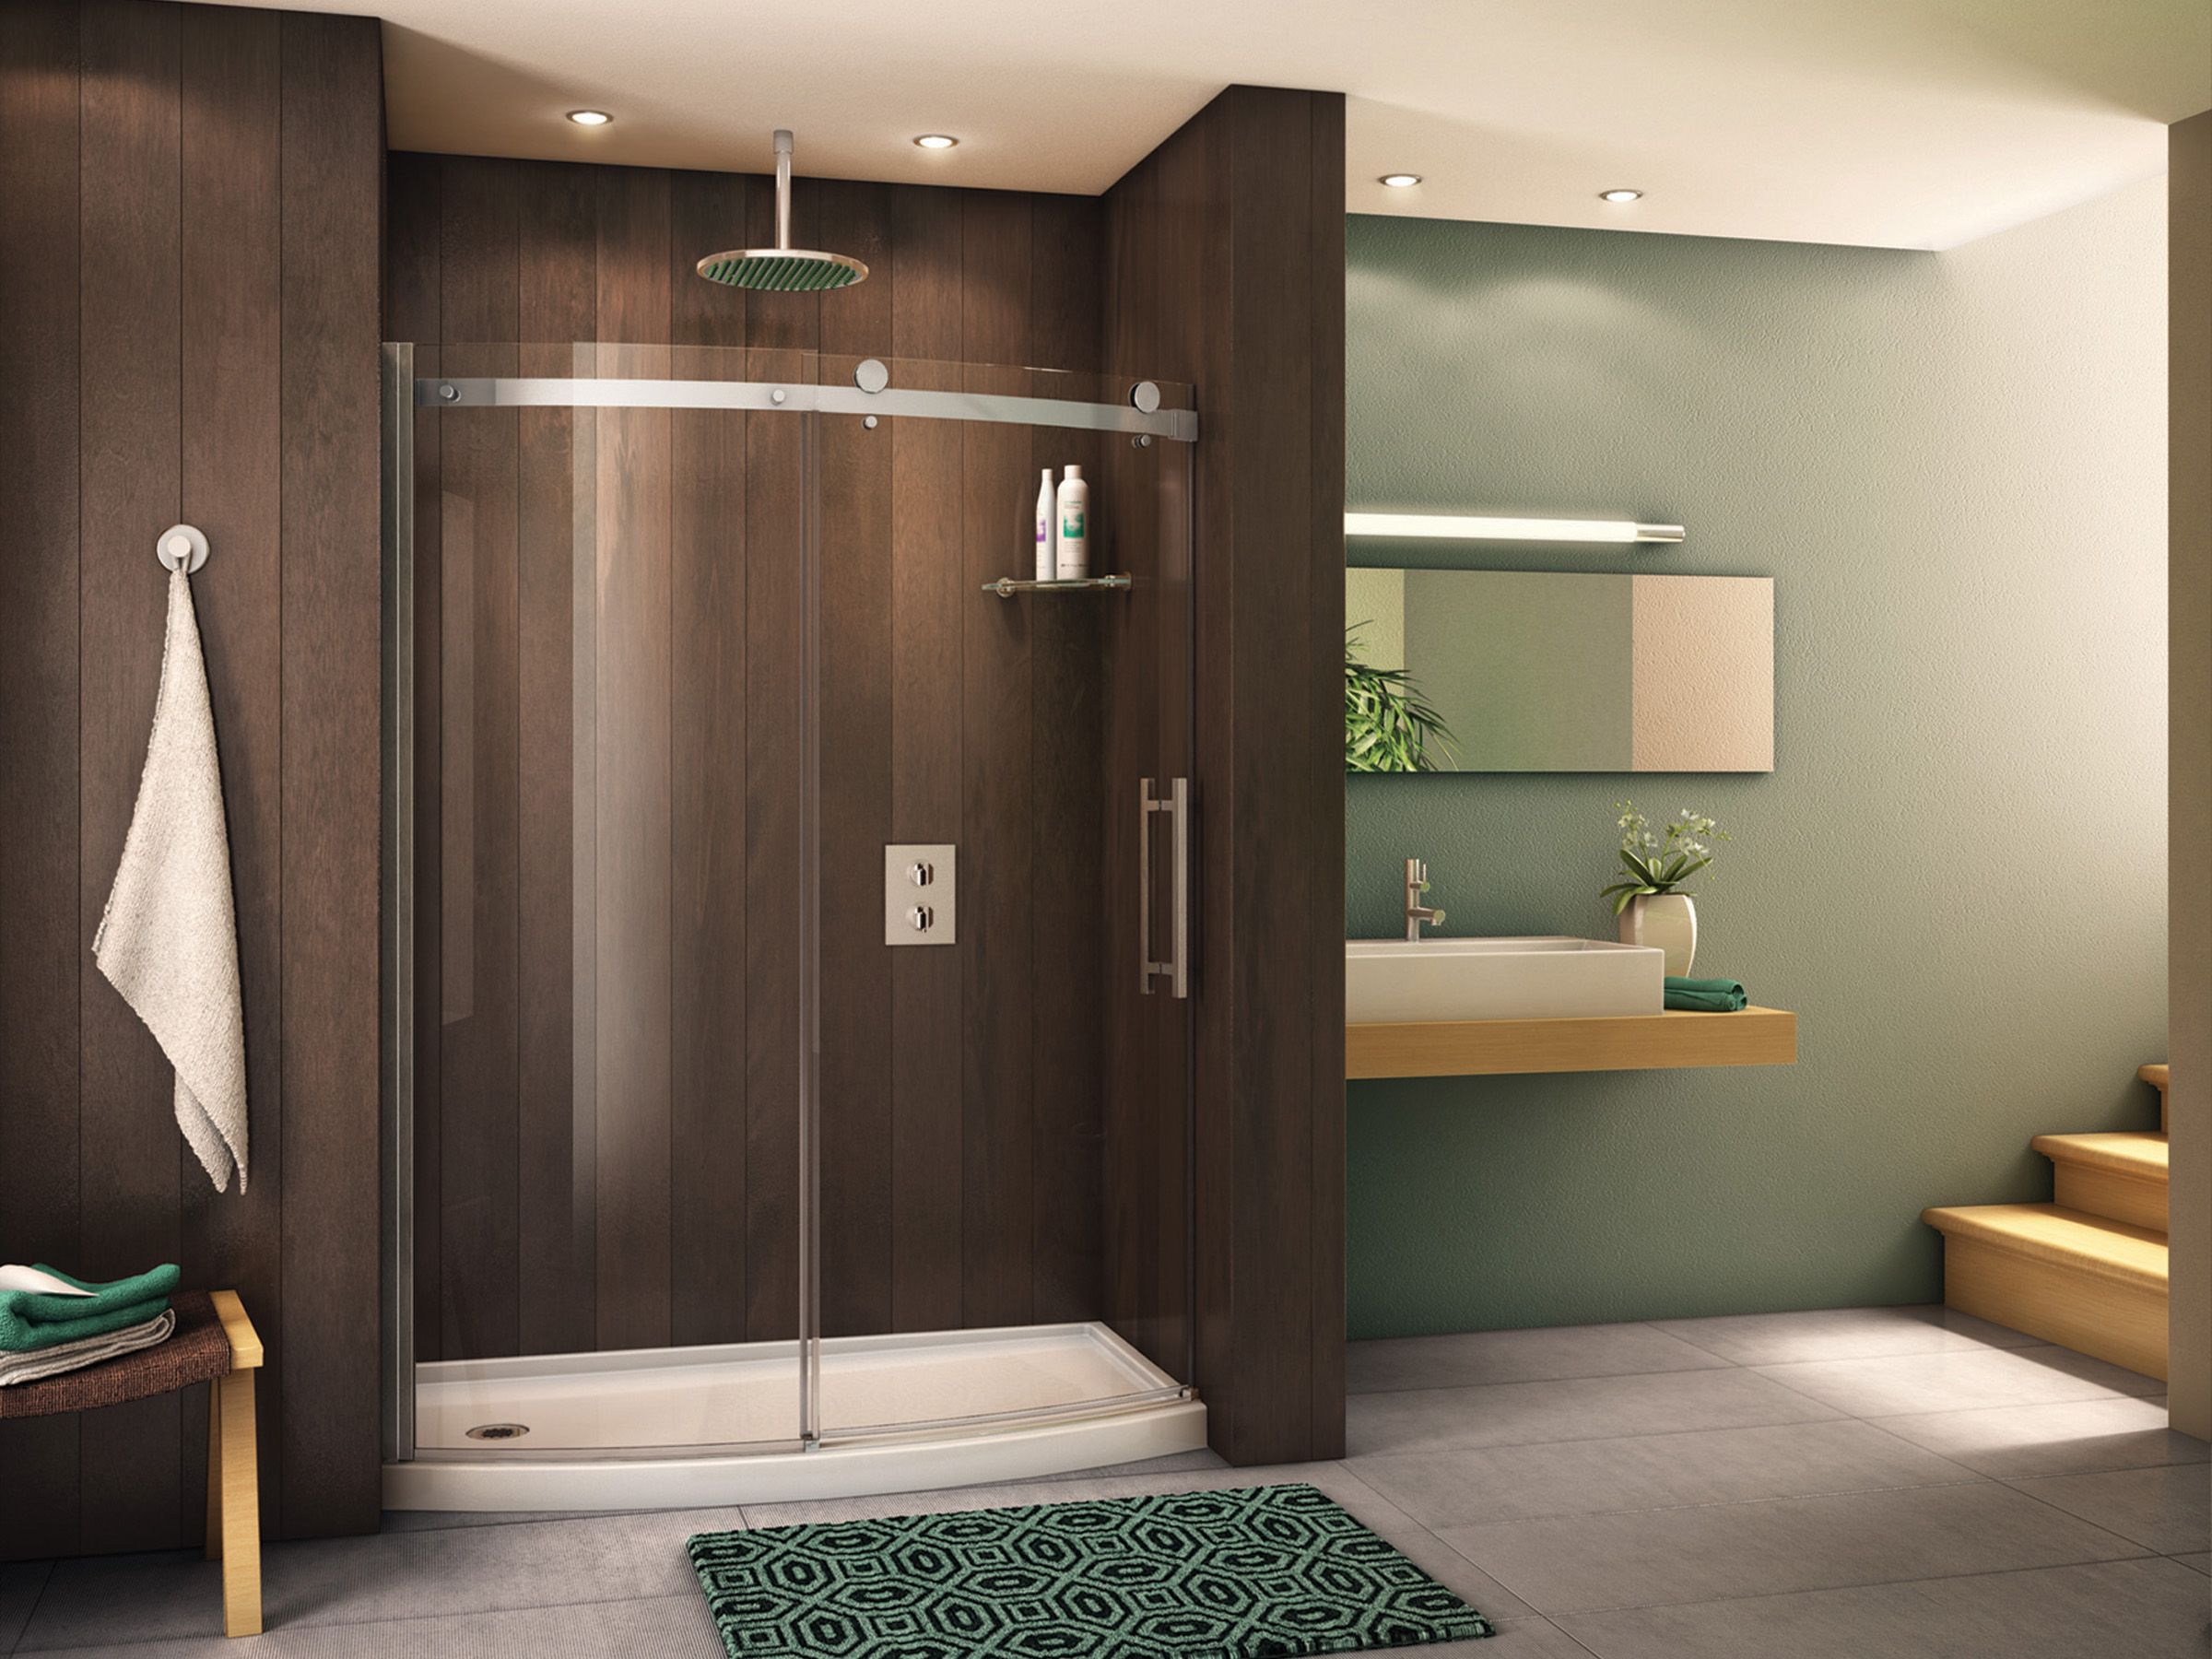 Apartment bathroom design - Bathroom Interior Showy Glass Shower Doors Luxurious Enclosure Design Contemporary Apartment Bathroom Design With